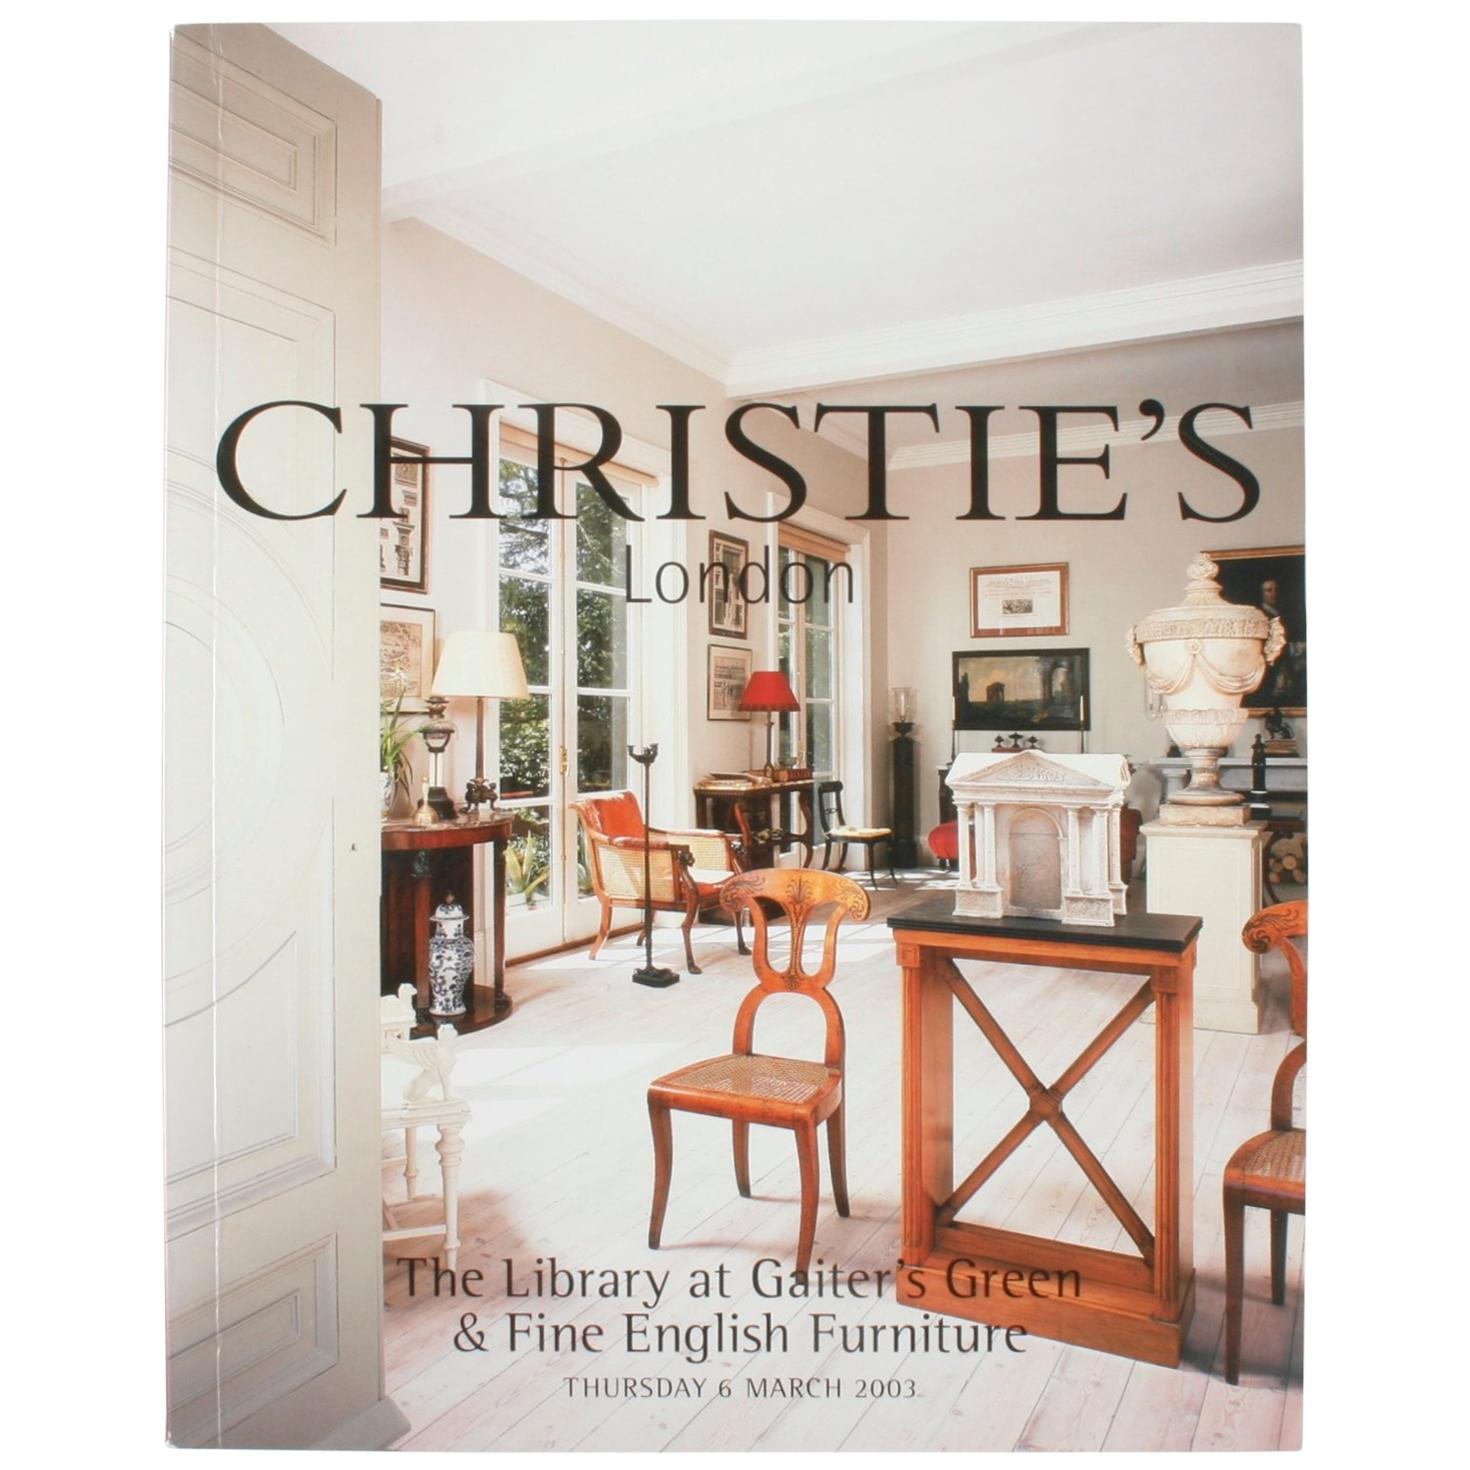 Christie's: Catalogue Library at Gaiter's Green & Fine English Furniture